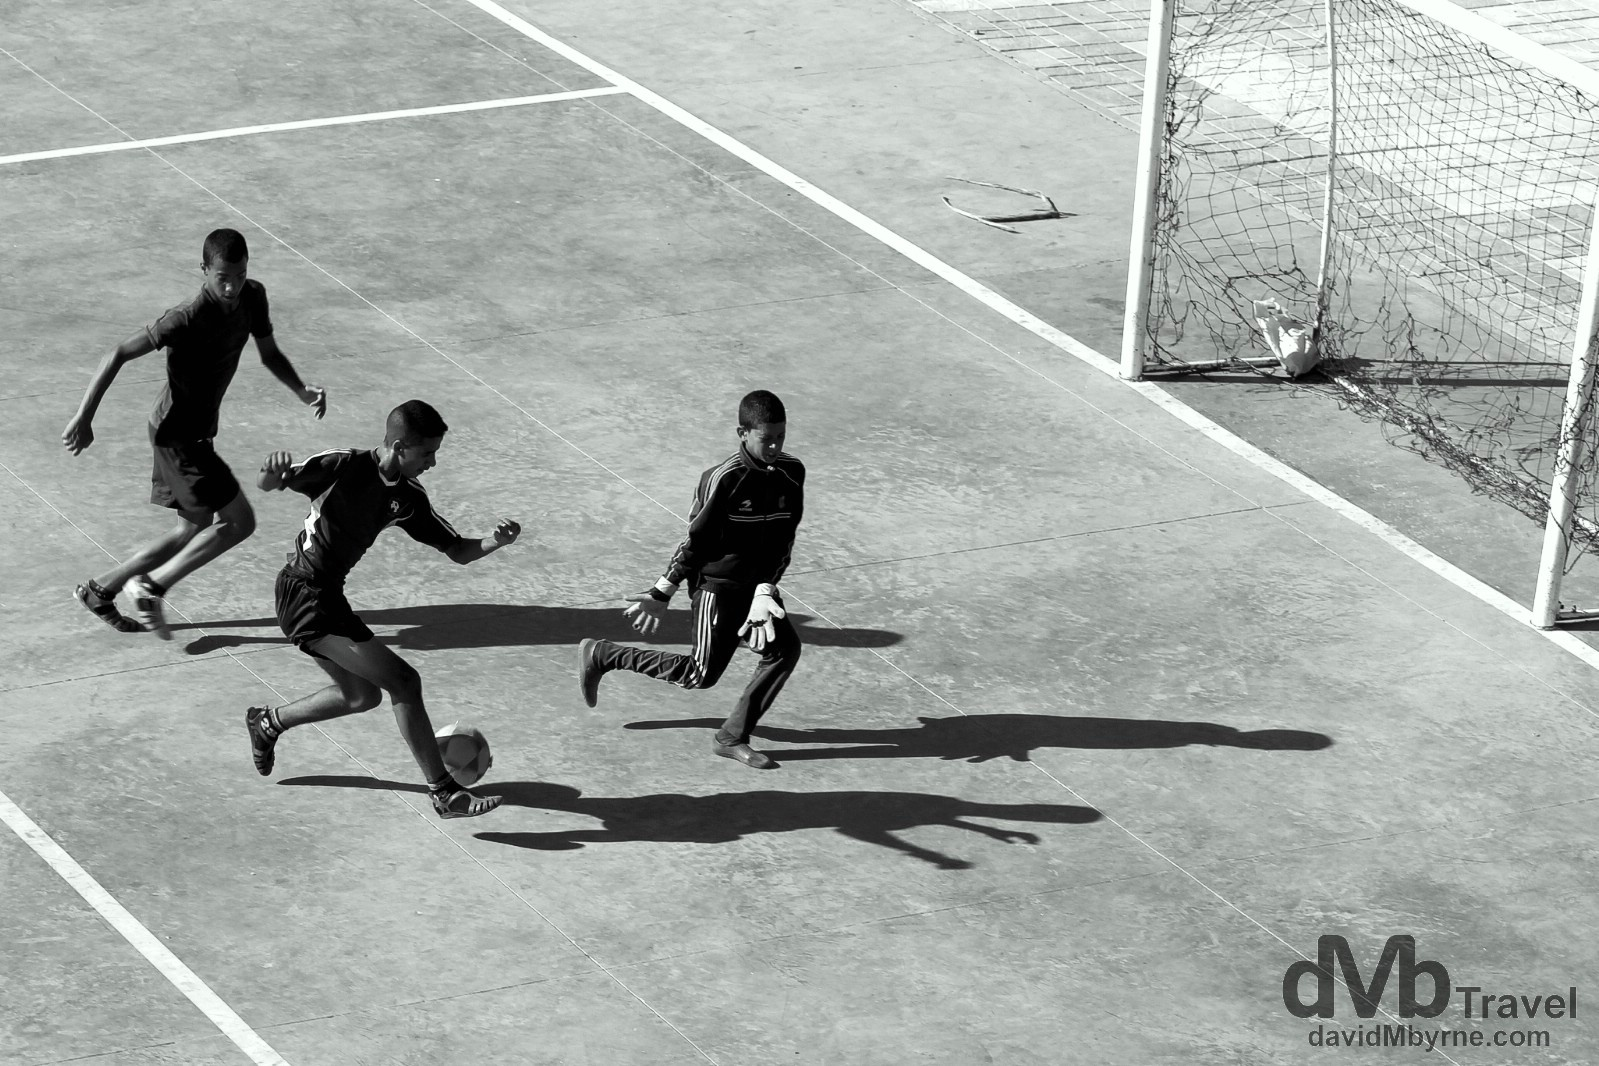 Playing soccer as seen from the ramparts of the Cite Portugaise, El Jadida, Morocco. April 29th, 2014.